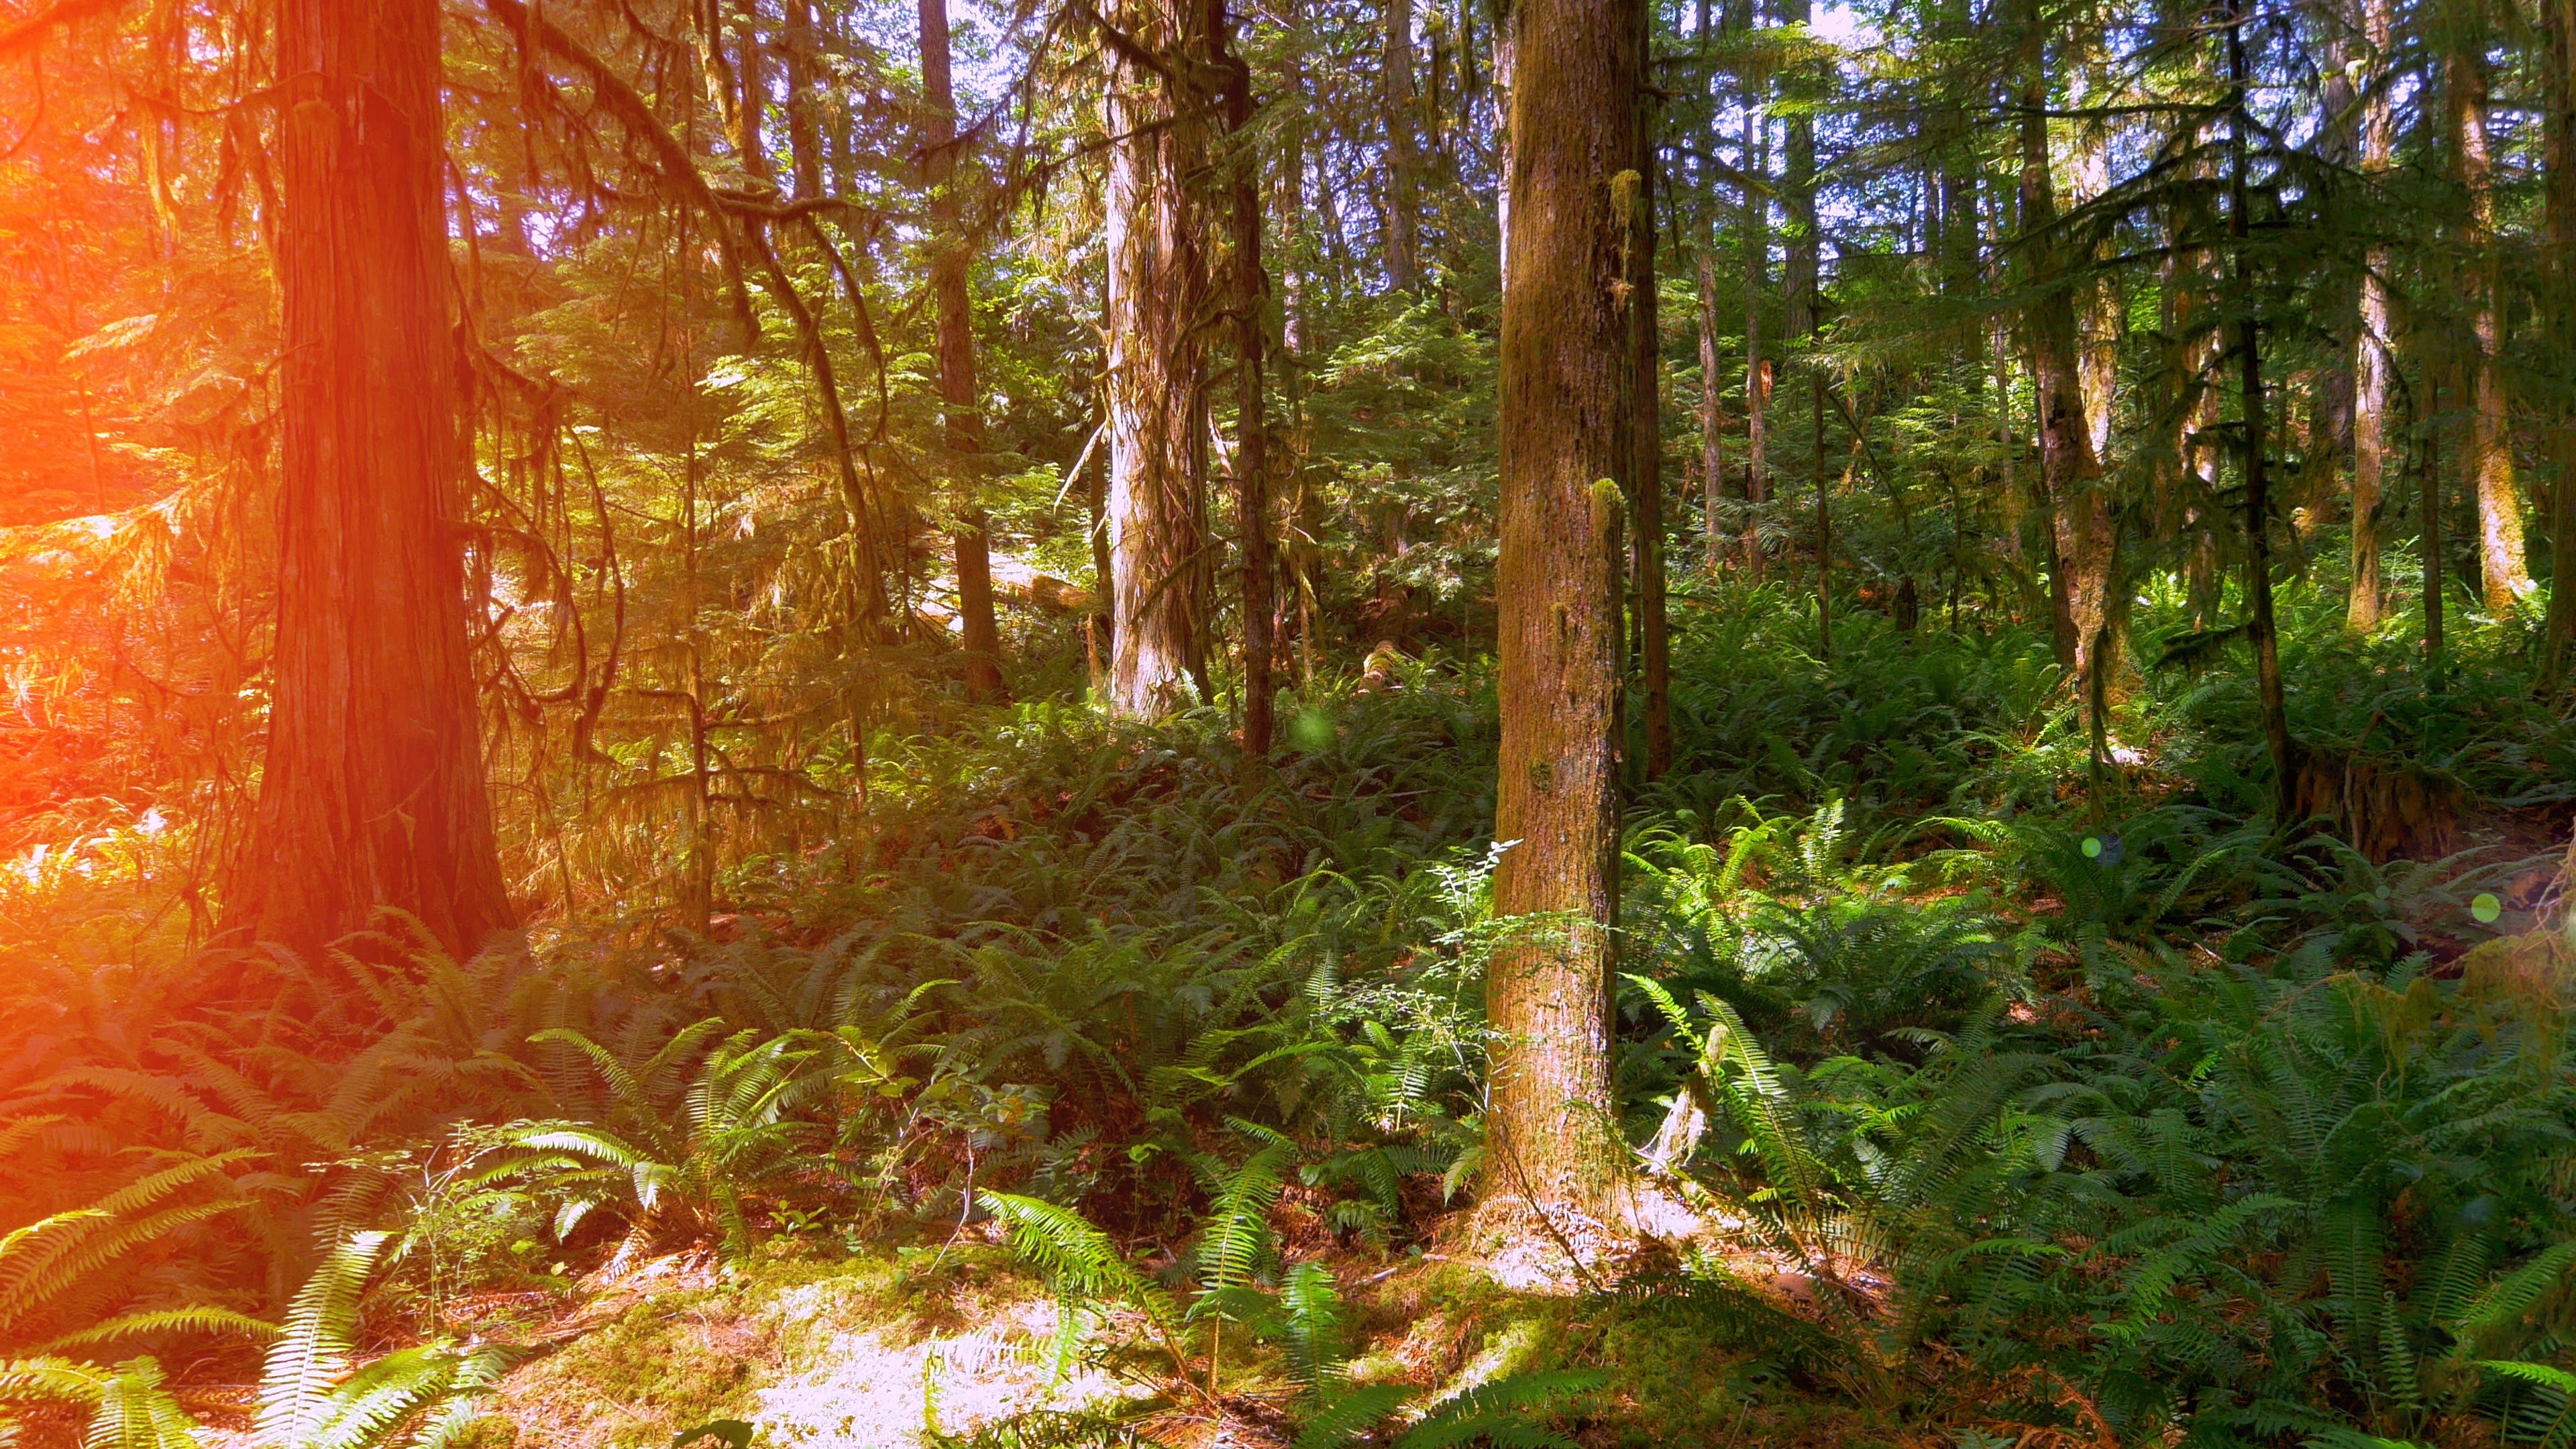 West Coast Rain Wood Forest Ferns Green Nature Trees Landscape Background Sun Stock Footage Ad Forest Ferns Green In 2020 Green Nature Landscape Trees Nature Tree